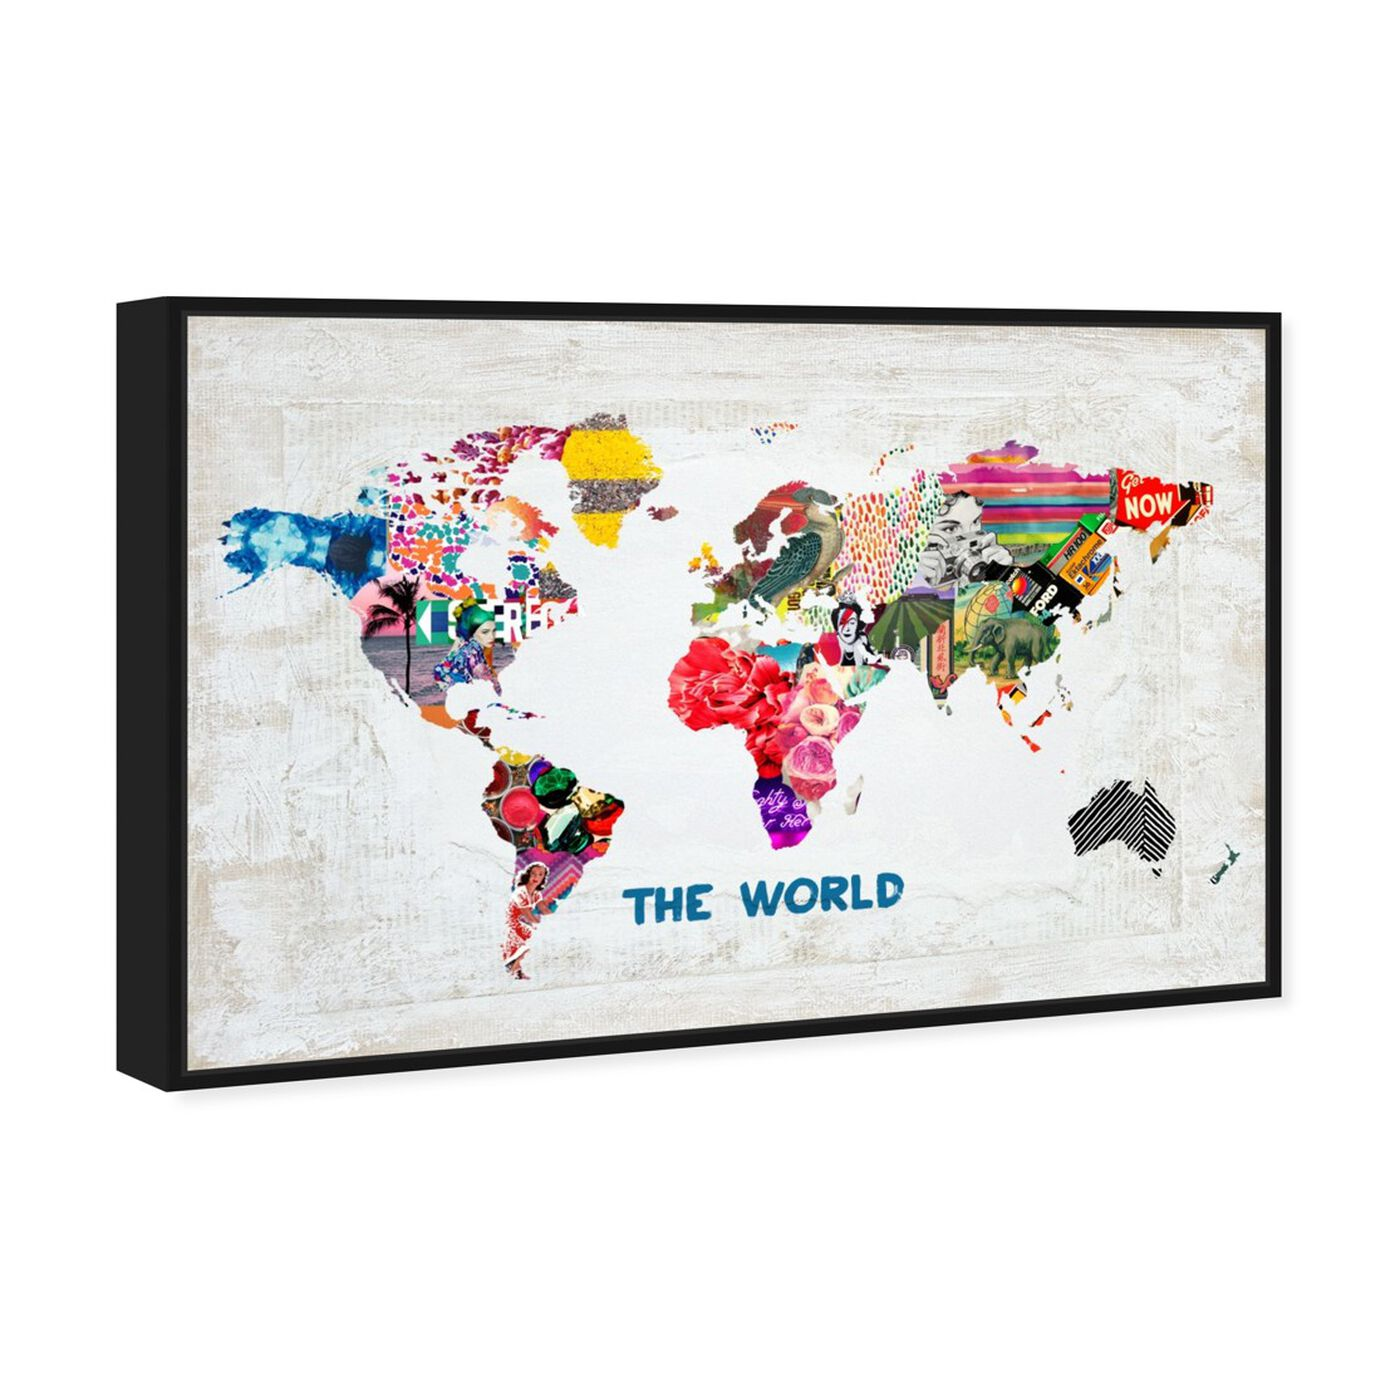 Angled view of Hipster Mapa Mundi featuring maps and flags and world maps art.